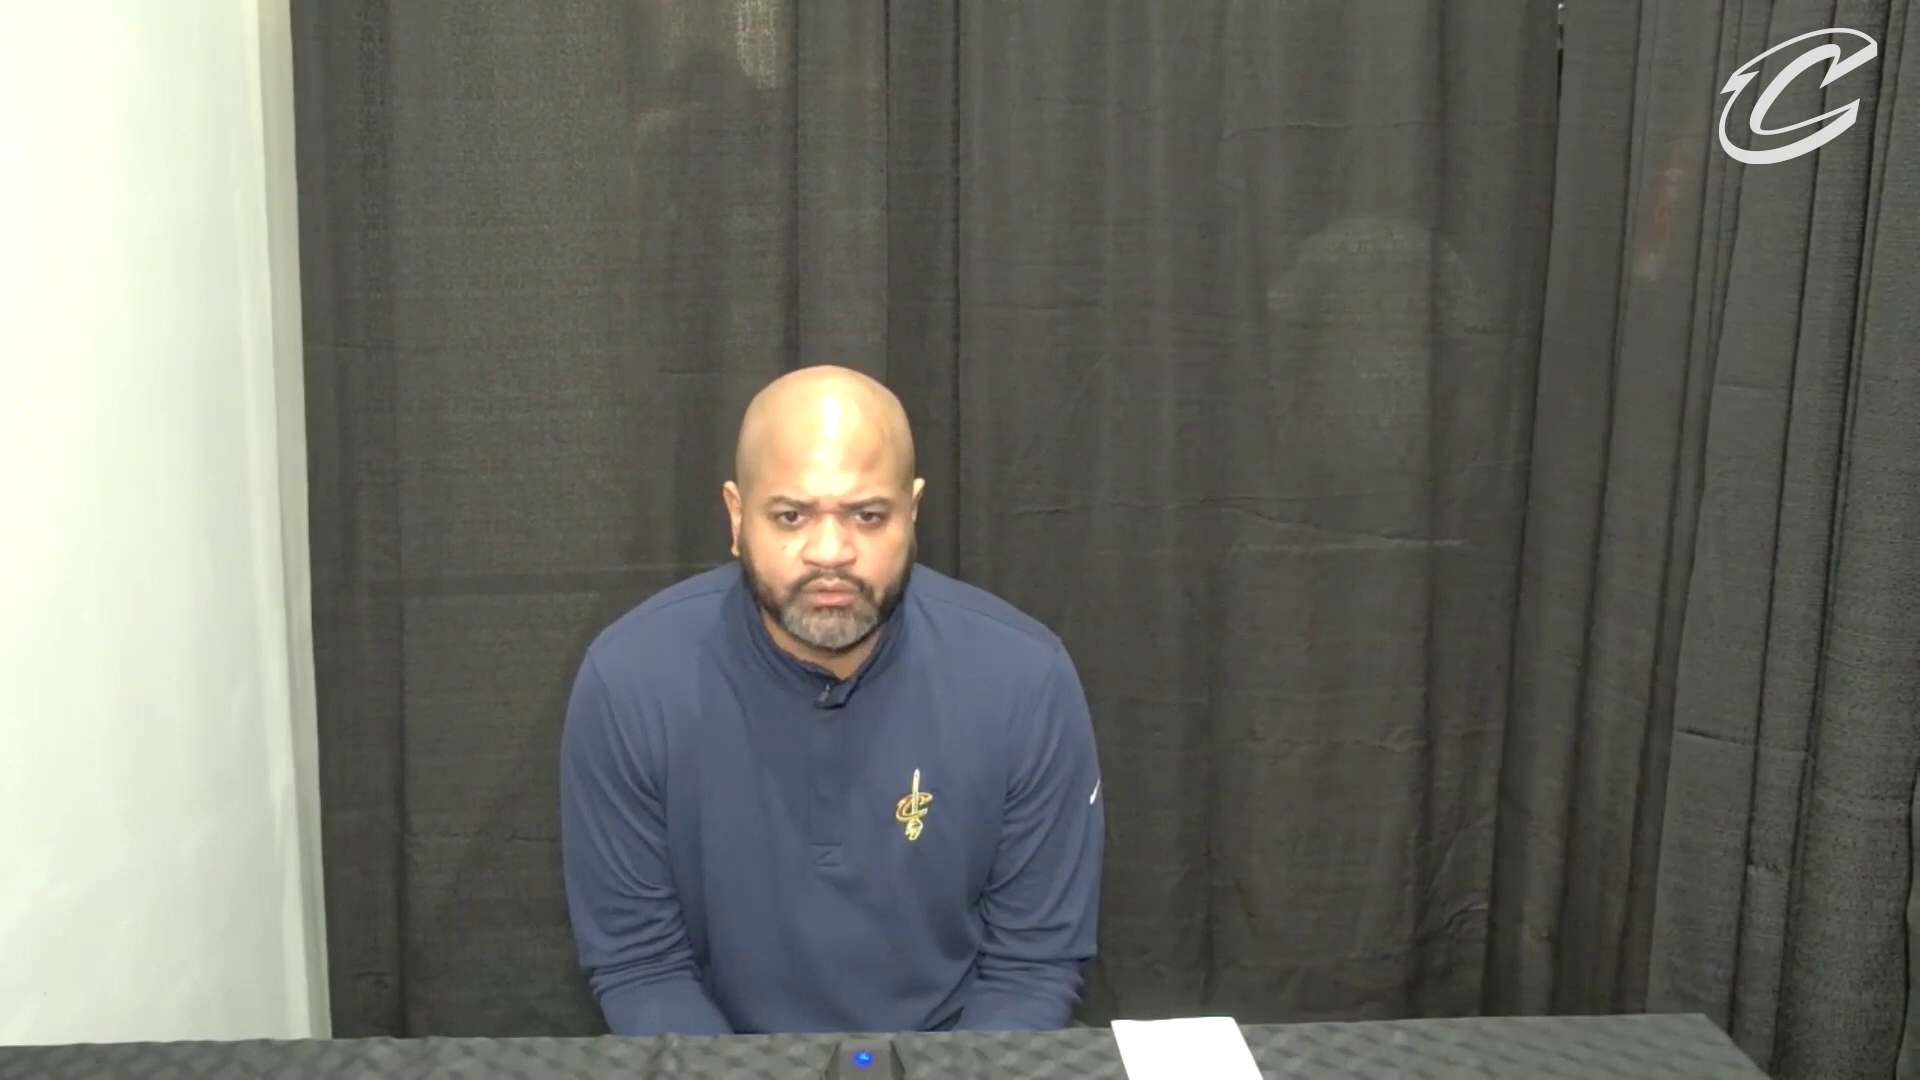 Cavs at Celtics Postgame: Coach Bickerstaff